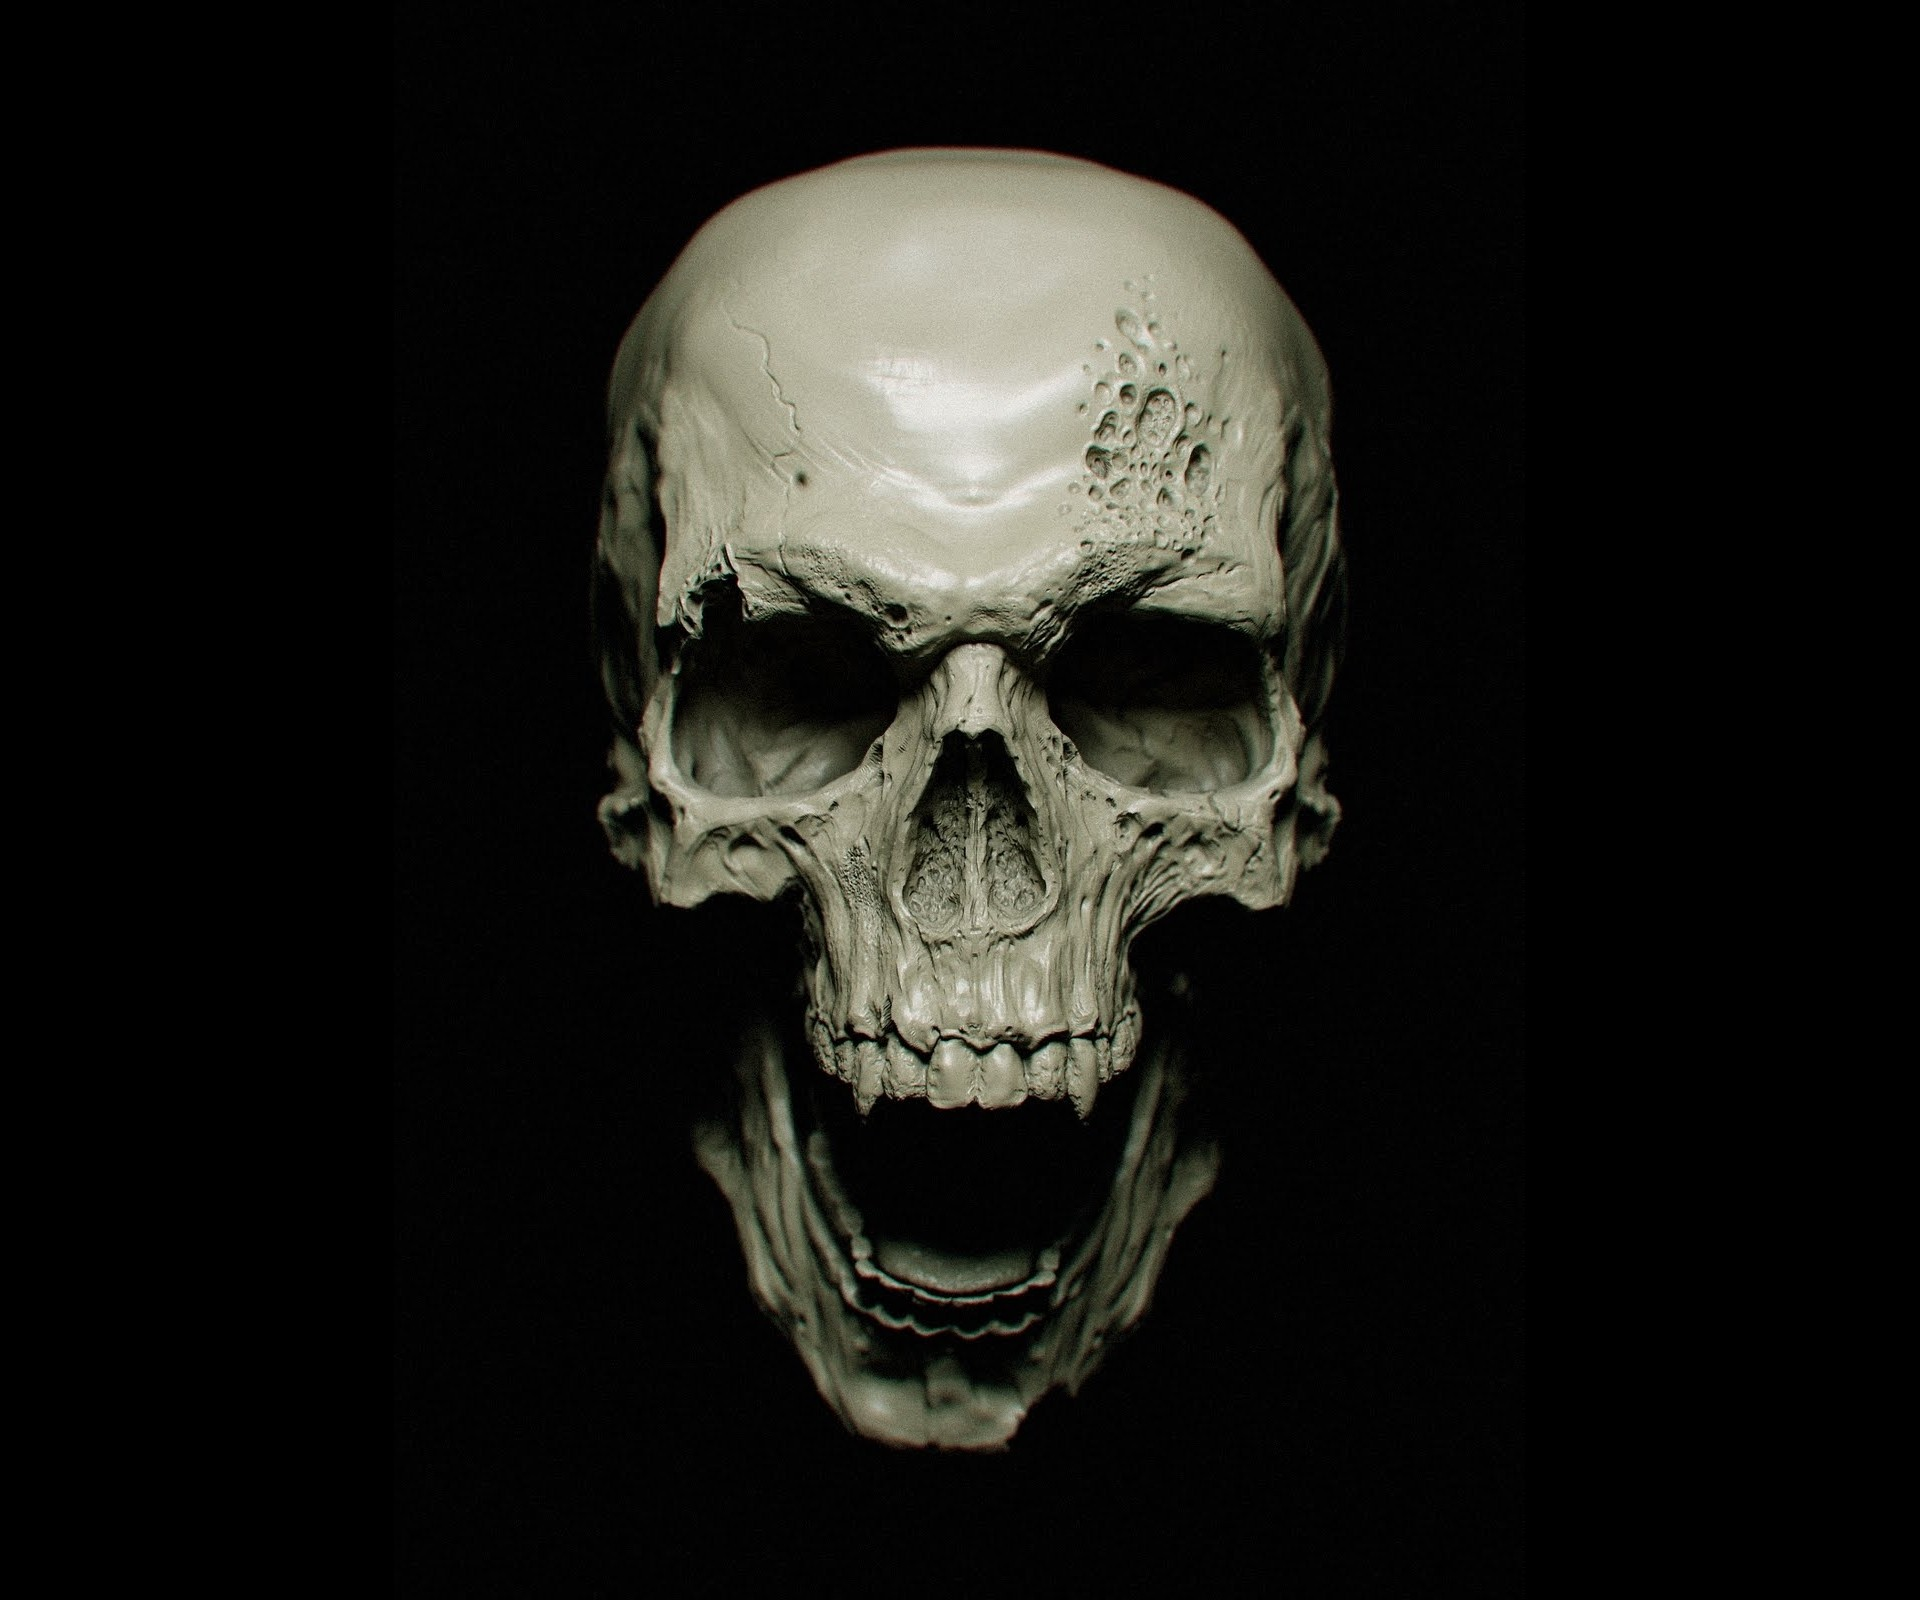 Skull, HD Artist, 4k Wallpapers, Images, Backgrounds ...